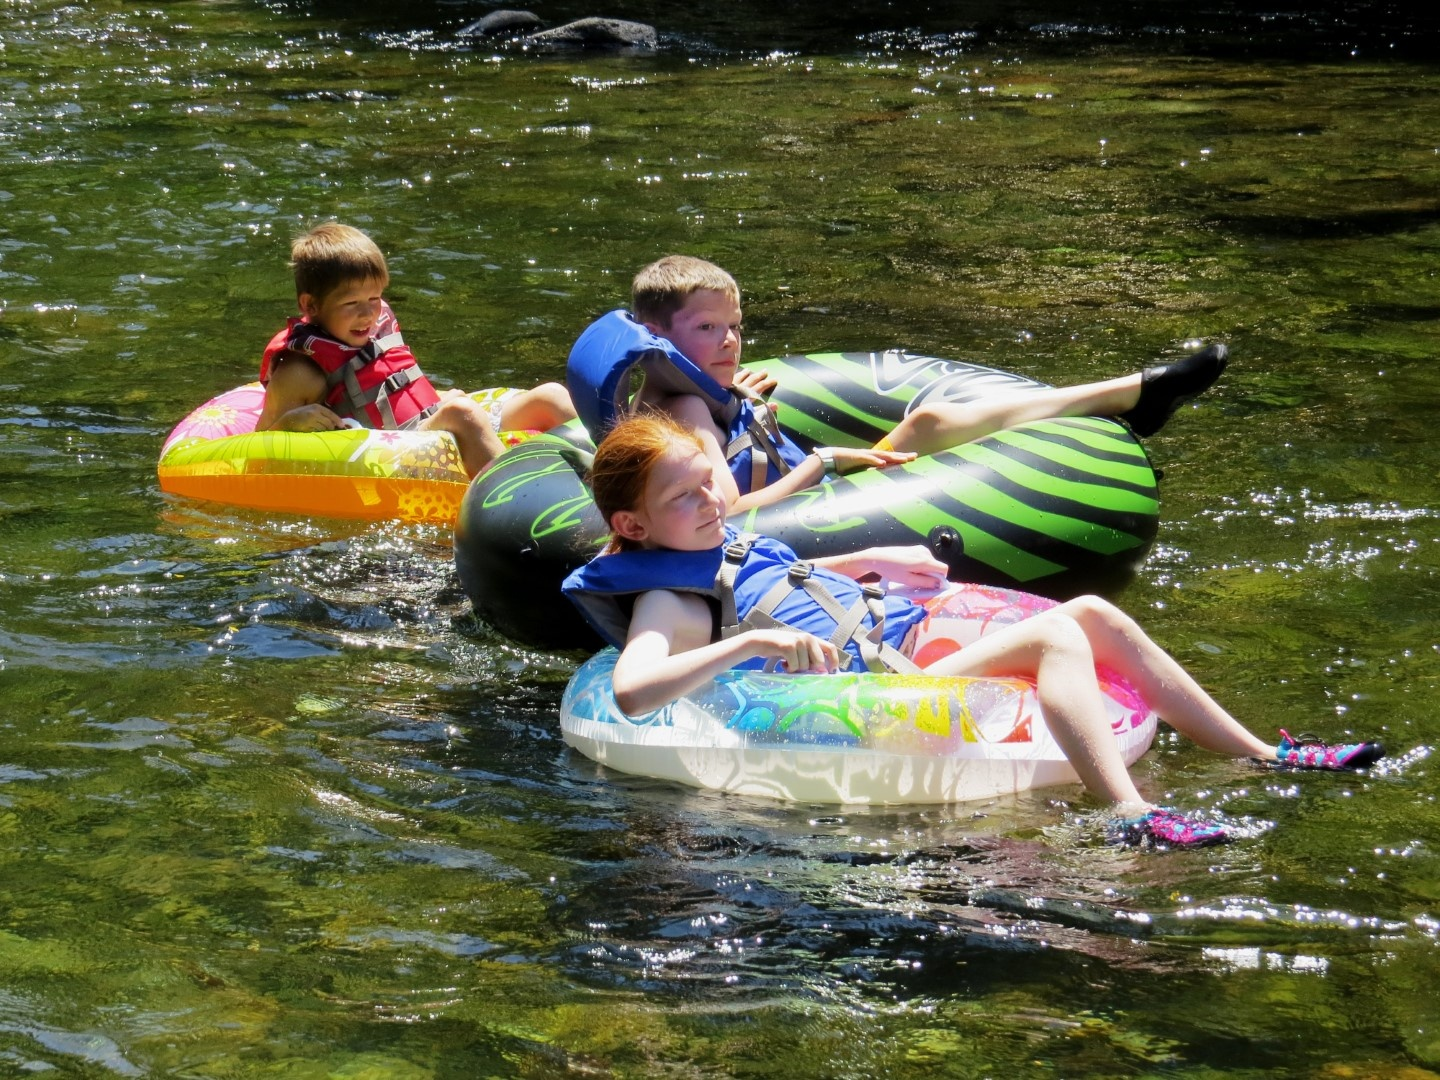 Campers on a river float.